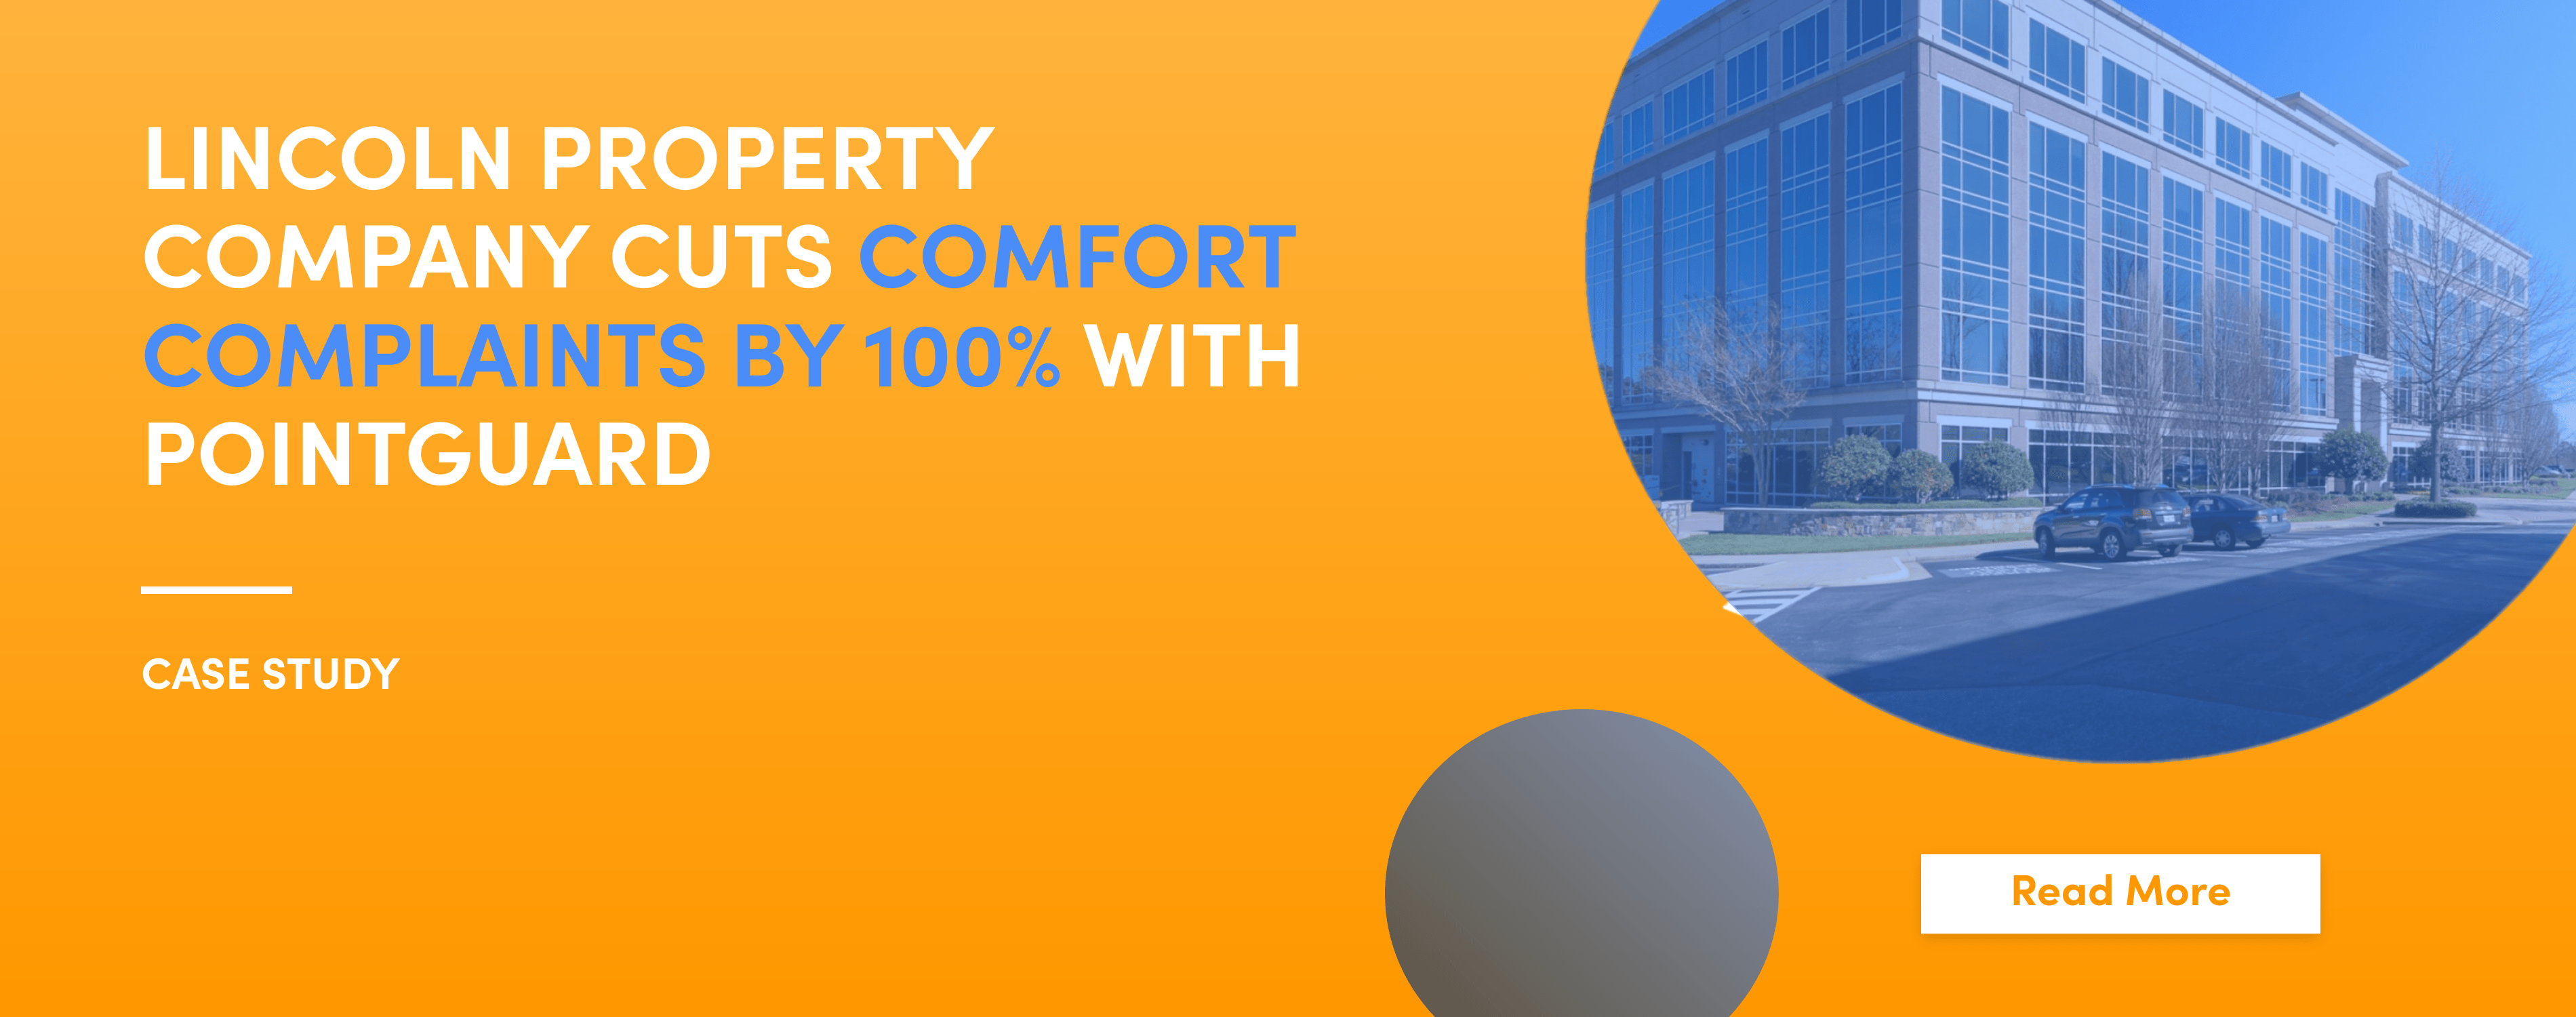 Lincoln Property Company Cuts Comfort Complaints by 100% with PointGuard